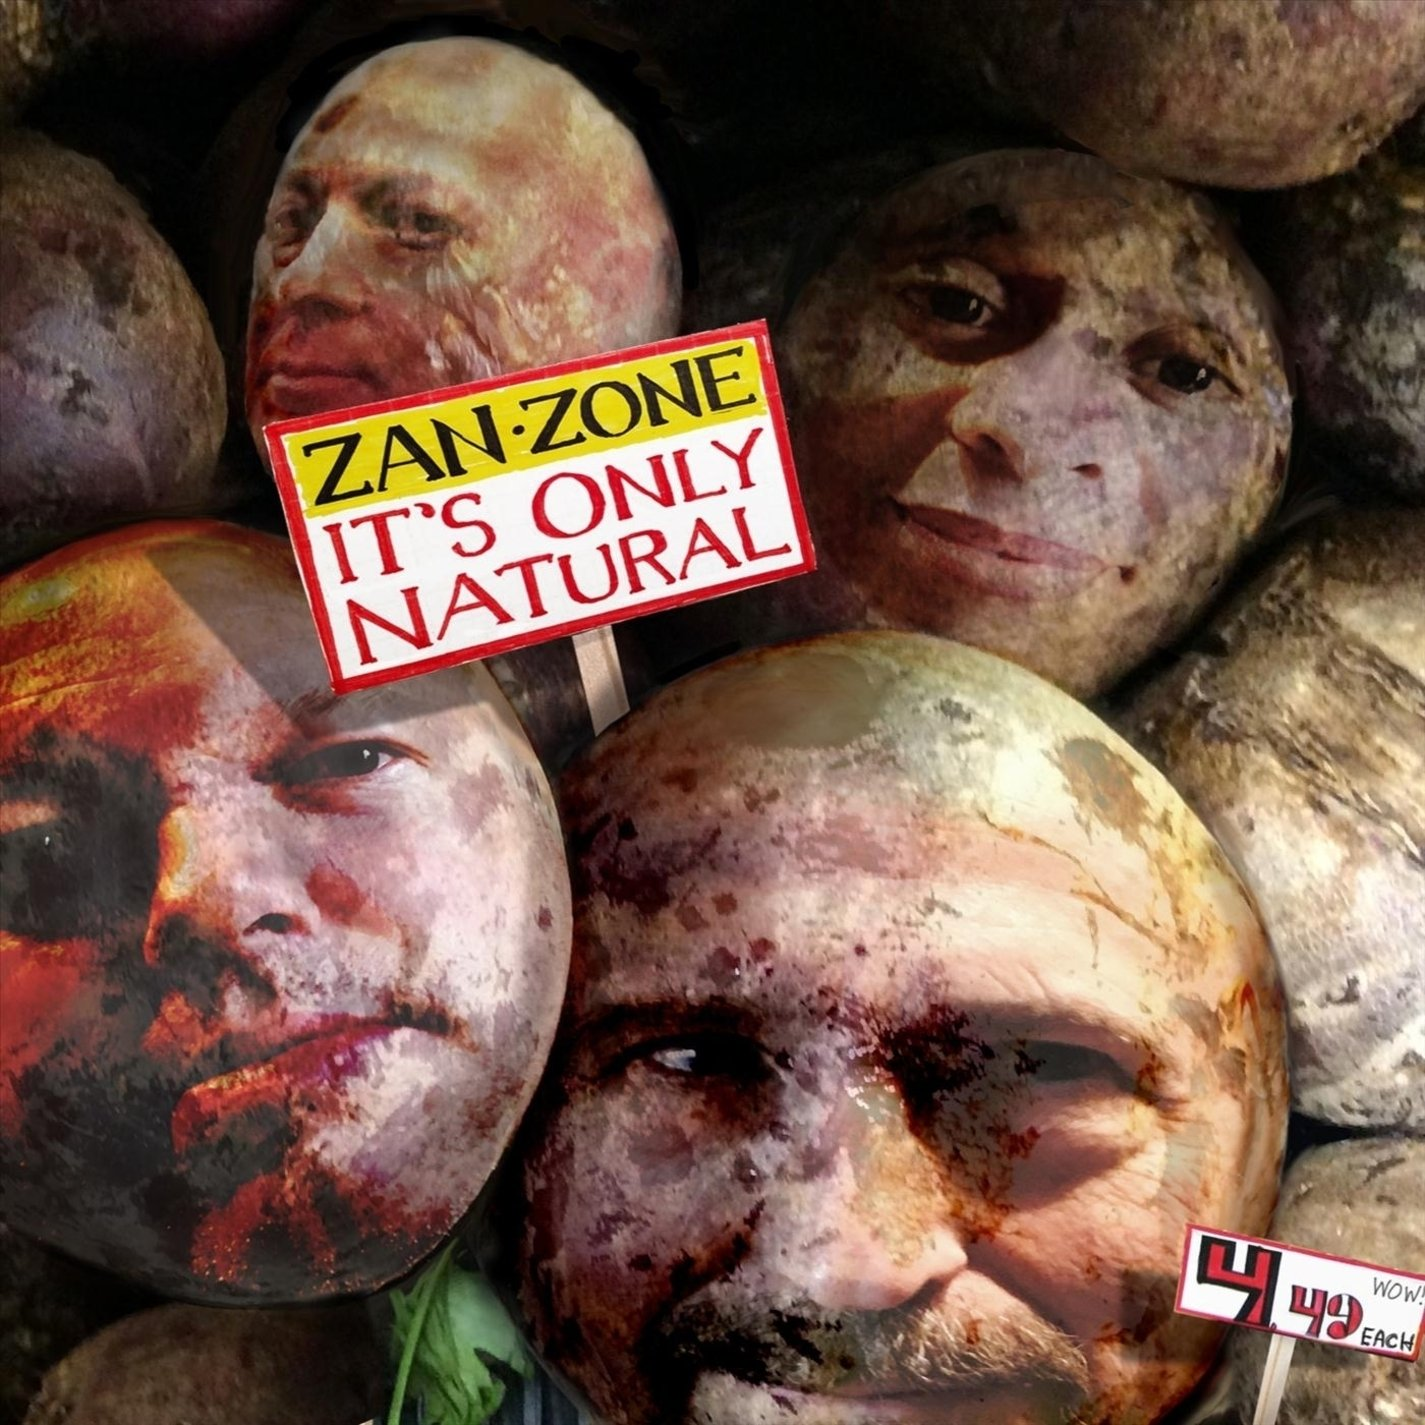 Zan Zone — It's Only Natural